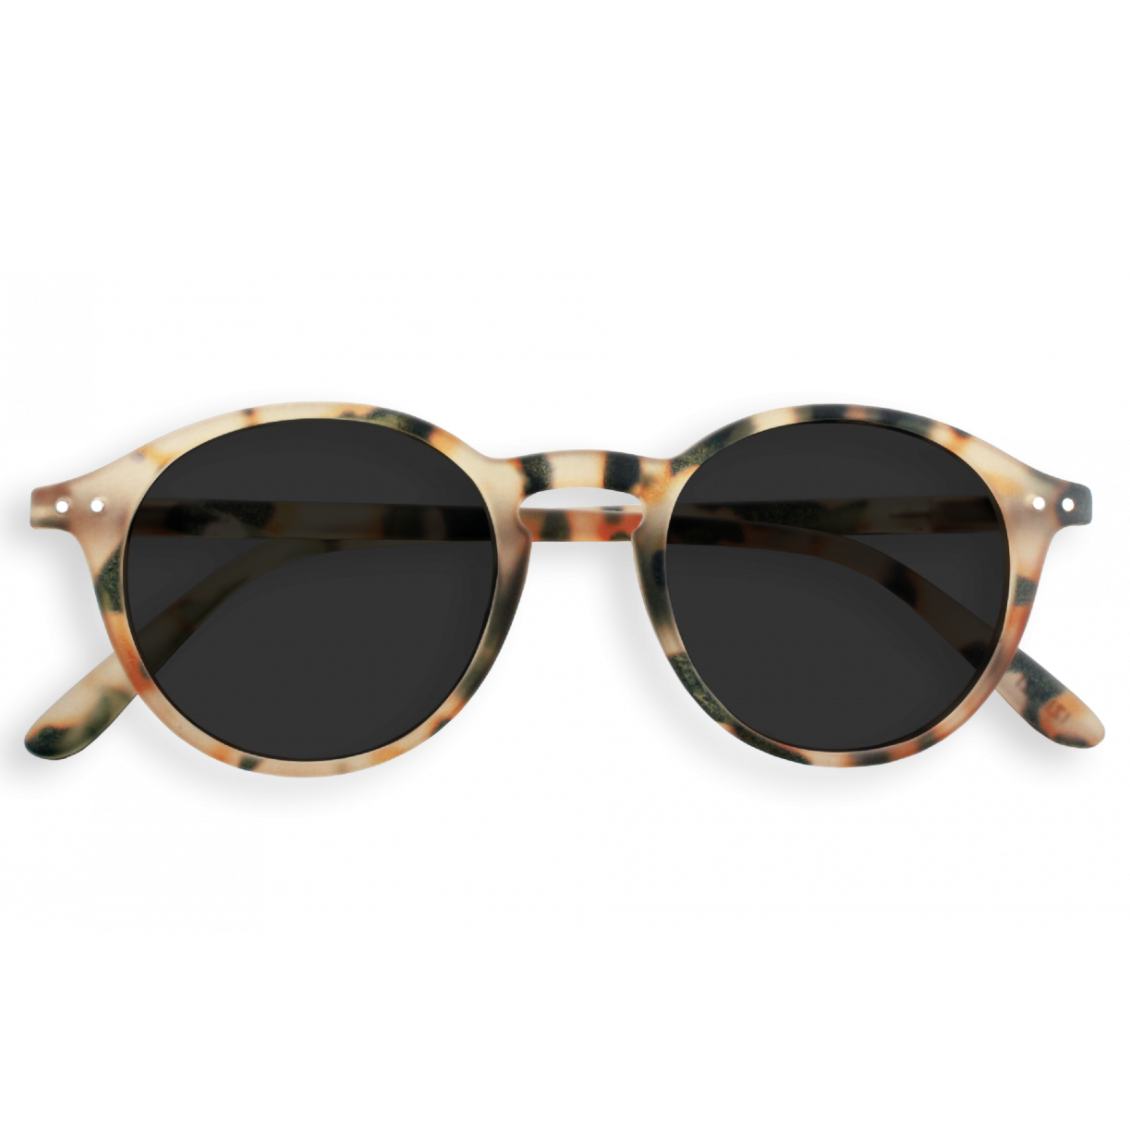 Sunglasses #D - Light Tortoise